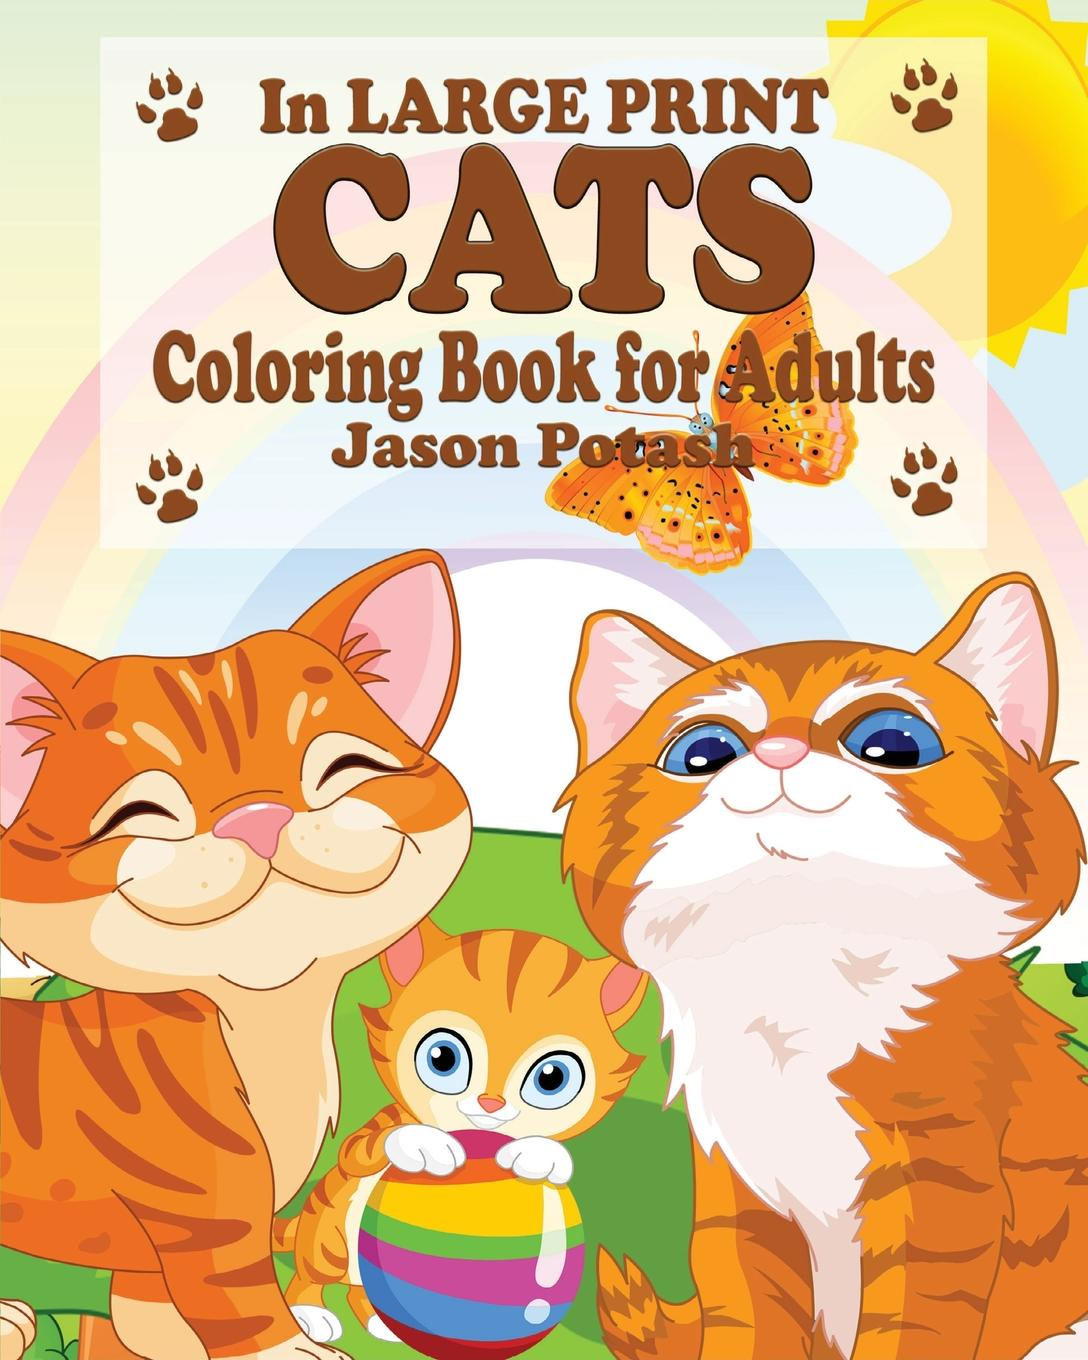 Jason Potash Cats Coloring Book for Adults ( In Large Print) sandra staines crazy maze coloring book